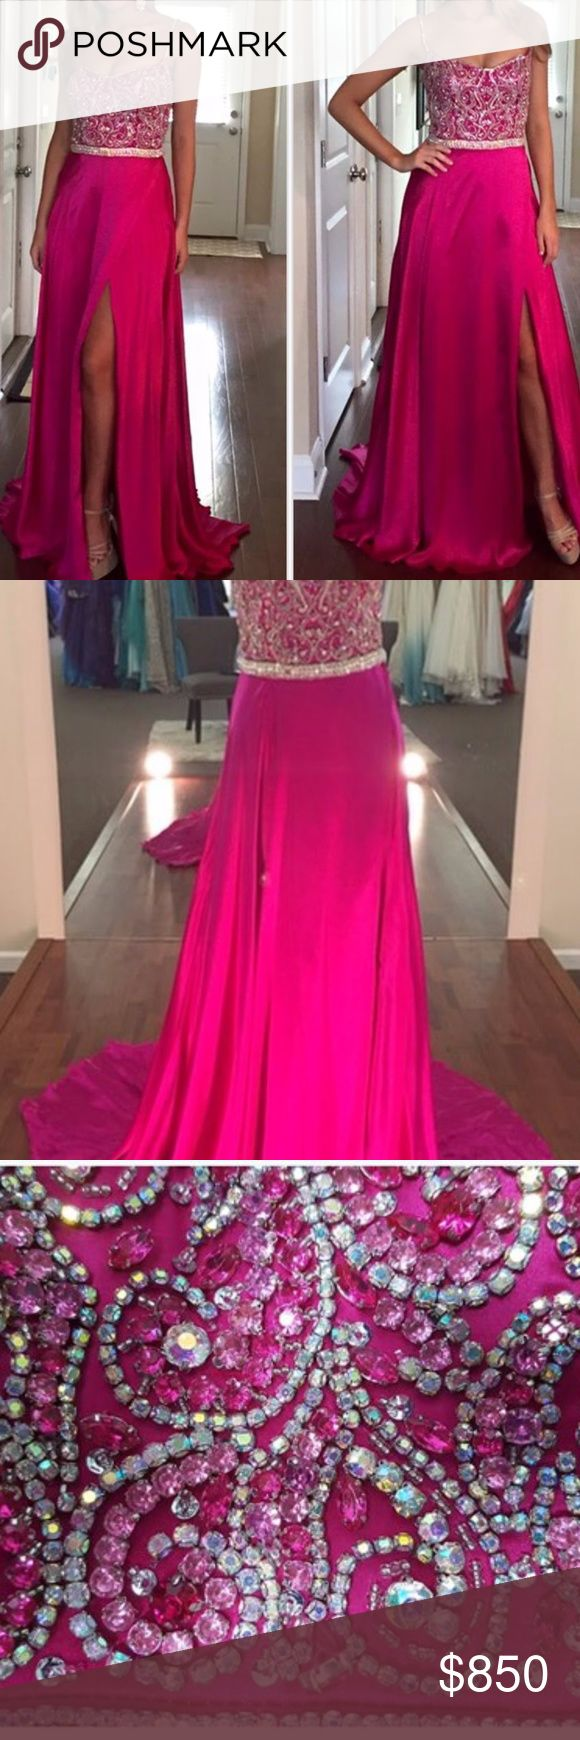 Mac Duggal Silk Charmuese gown Enchanting Mac Duggal gown in a vibrant fuchsia with exquisite crystal beading.  The fabric of the skirt literally floats onstage. Size 4 Mac Duggal Dresses Prom